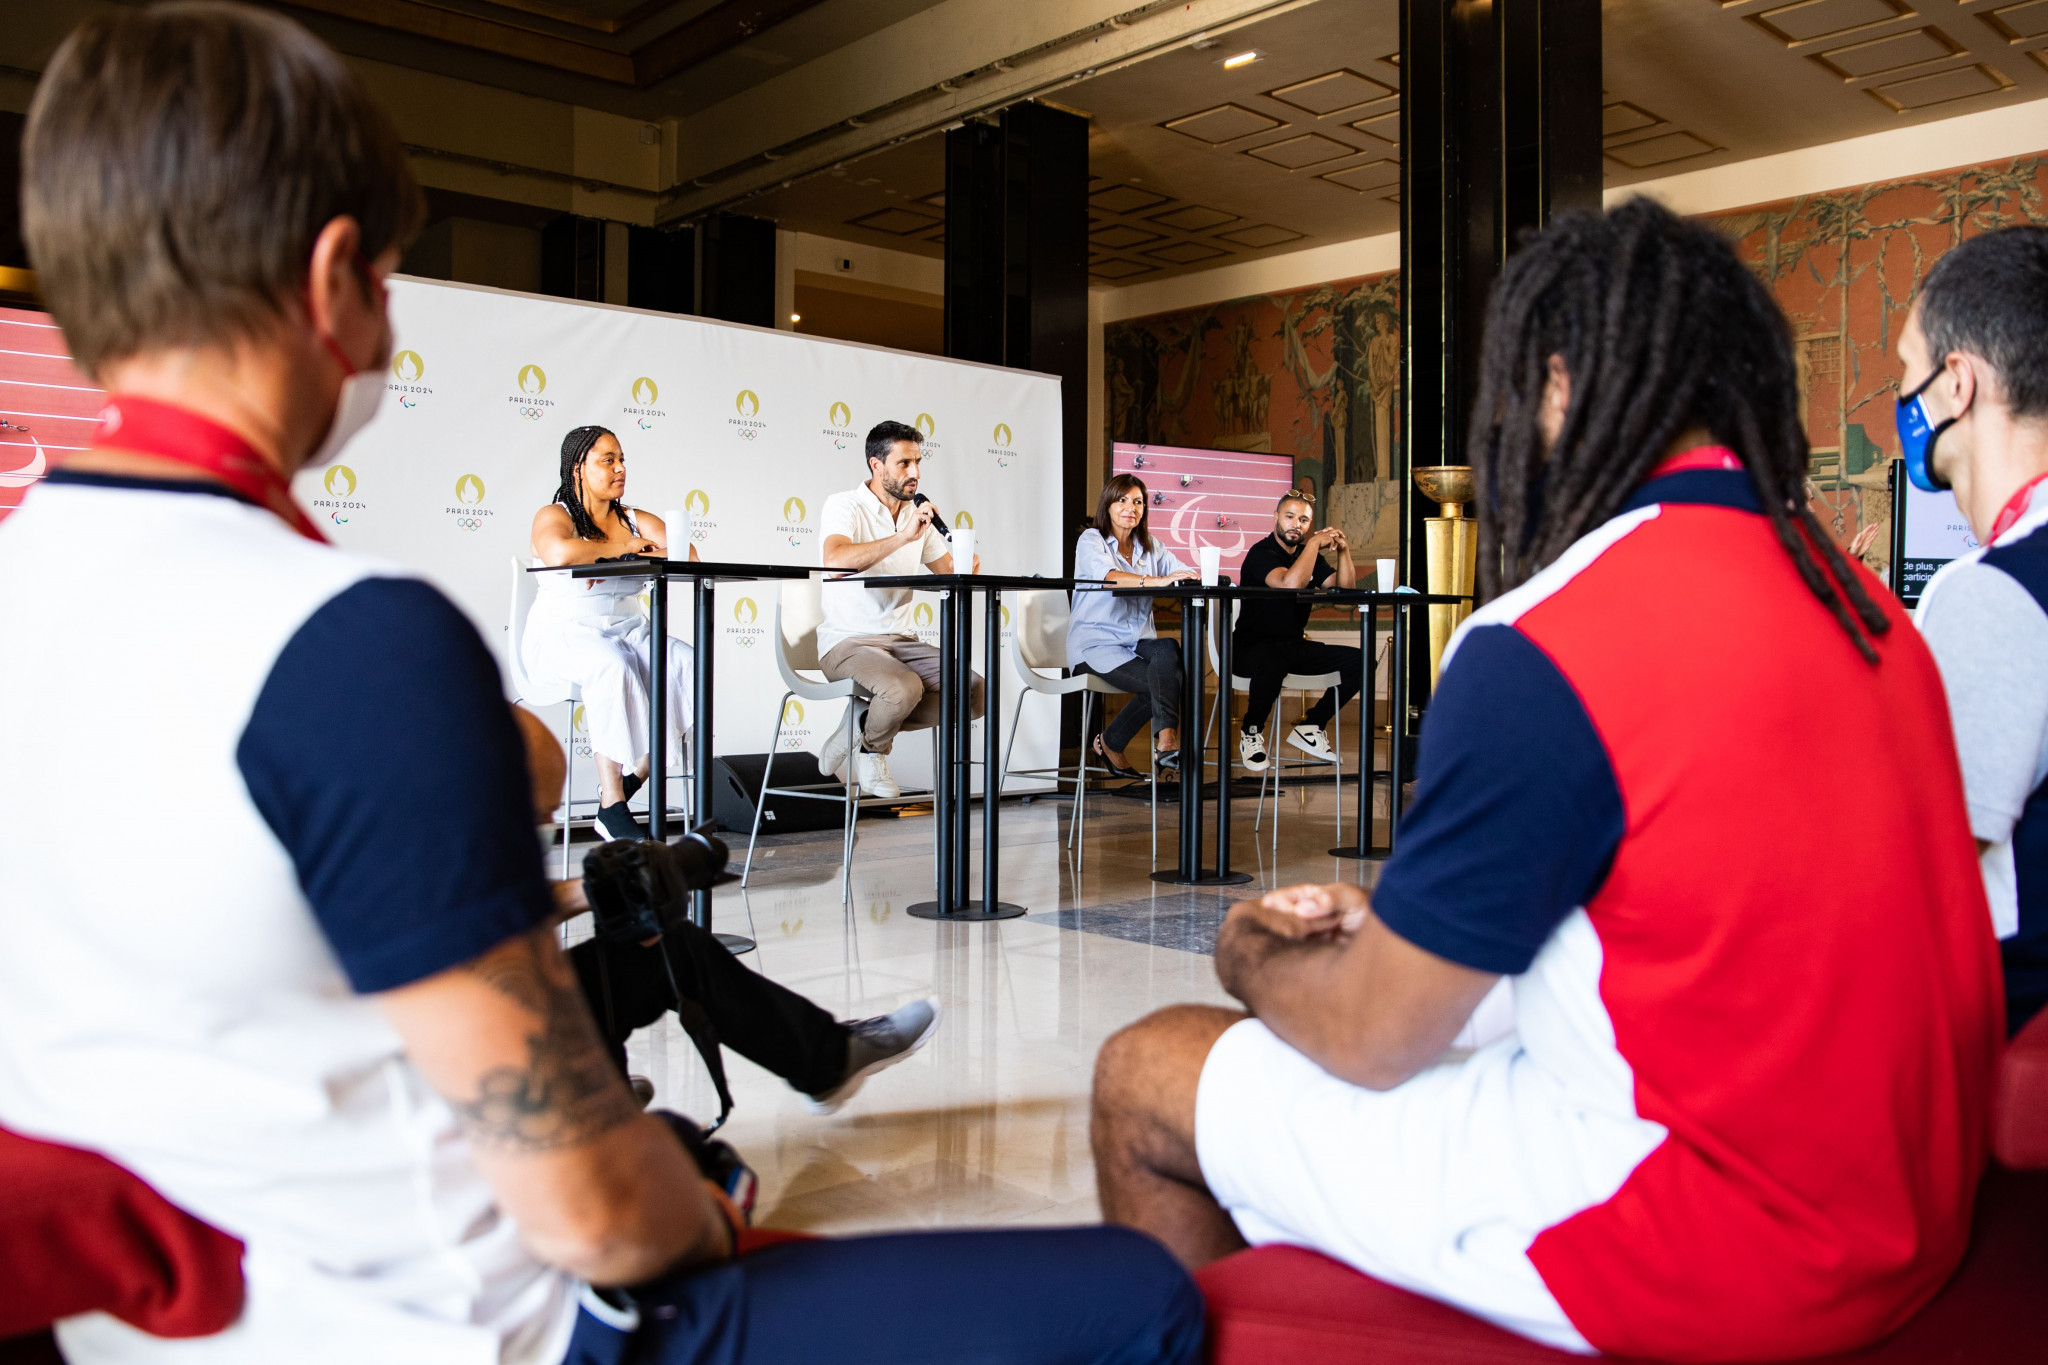 Tony Estanguet said the Paris 2024 handover segment at the Tokyo 2020 Closing Ceremony would be a sign of things to come ©Paris 2024